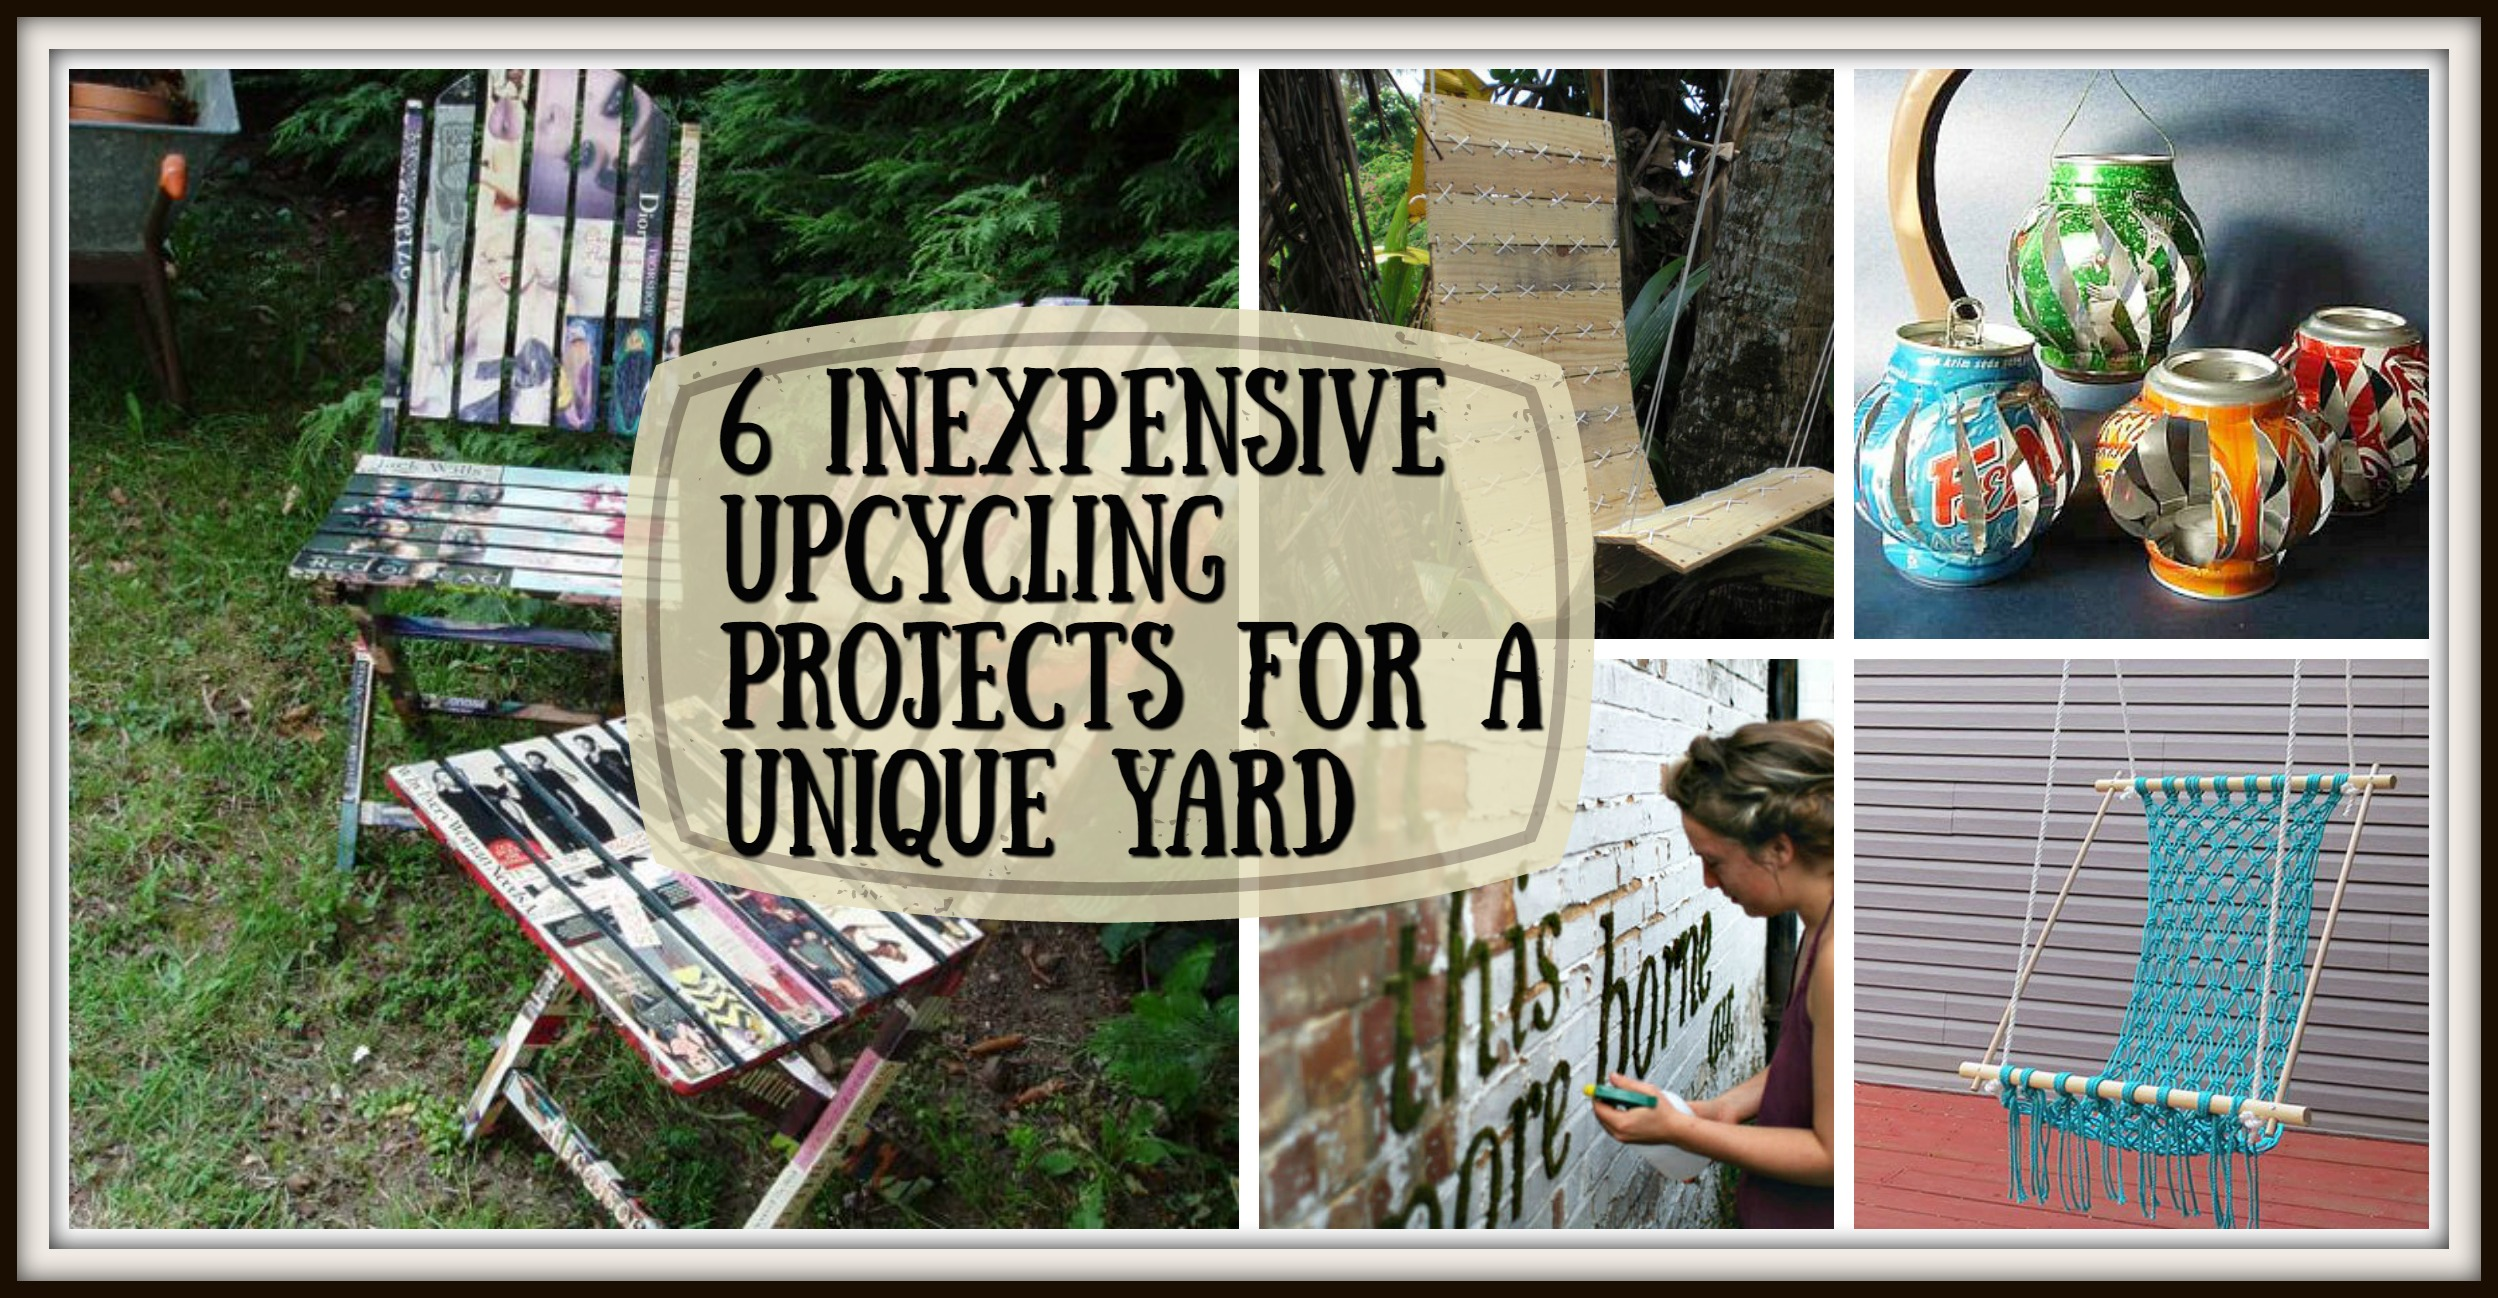 6 inexpensive upcycling projects for a unique yard